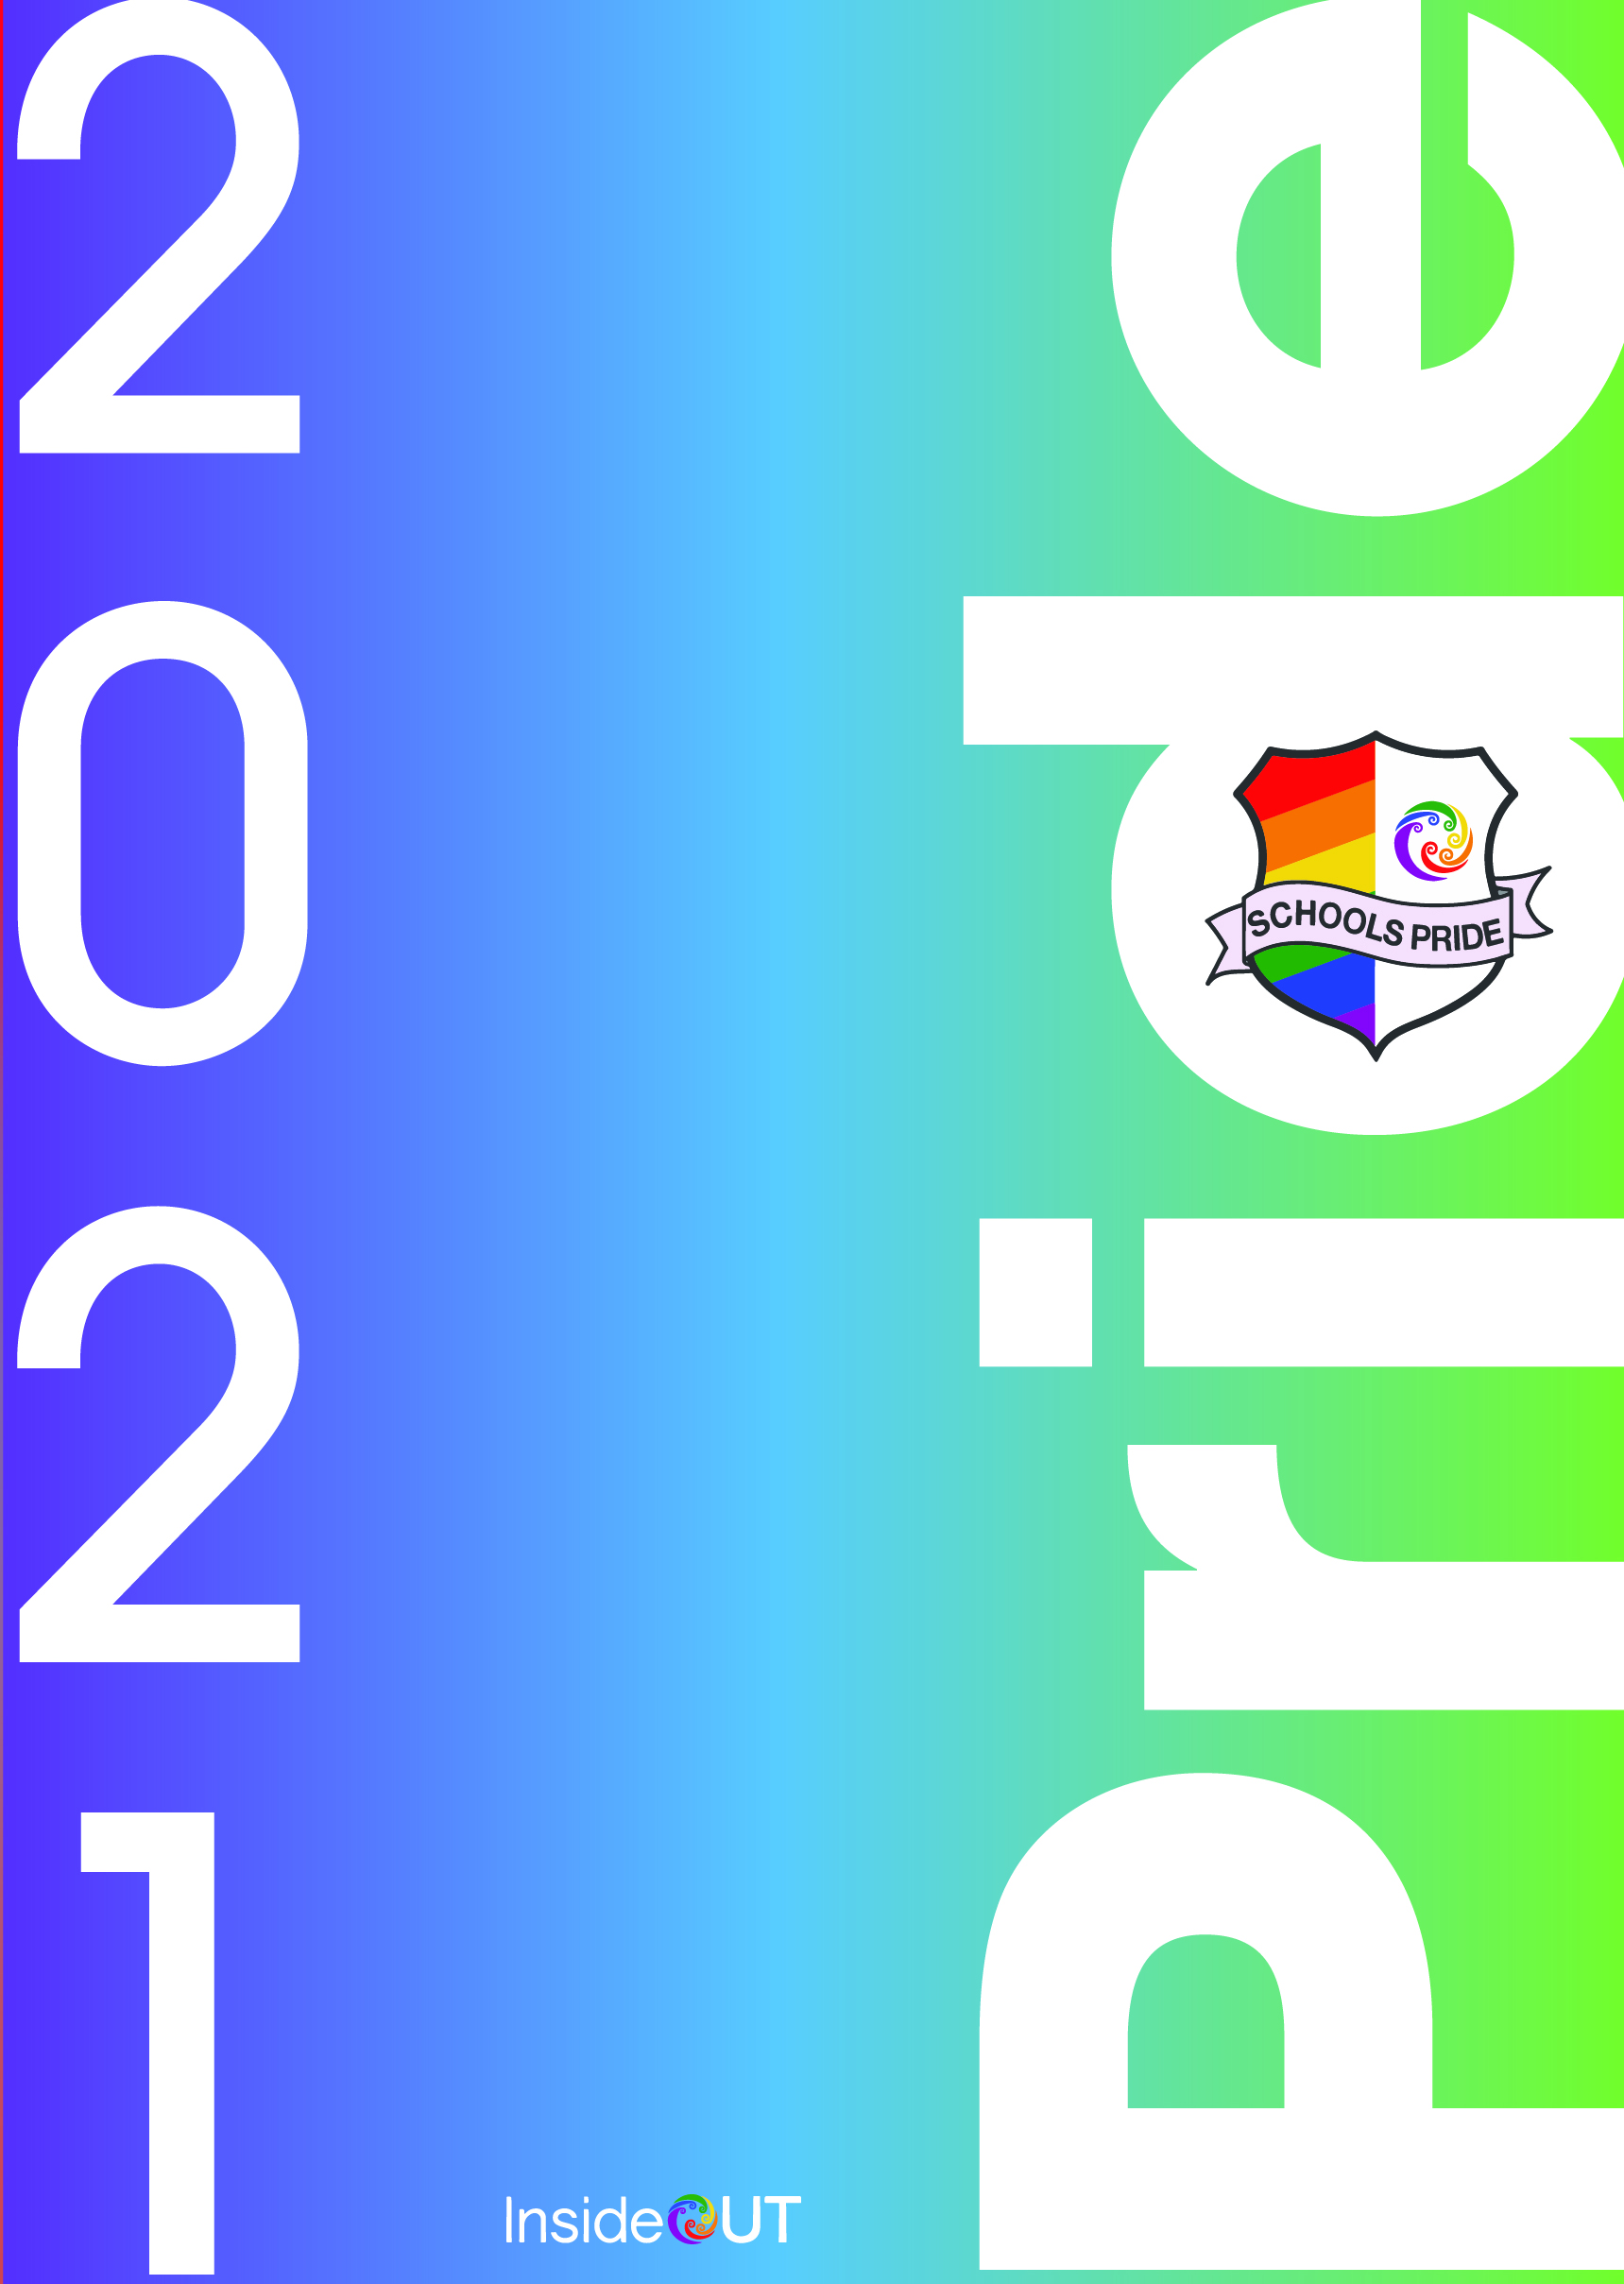 Pride 2021 Poster in blue green